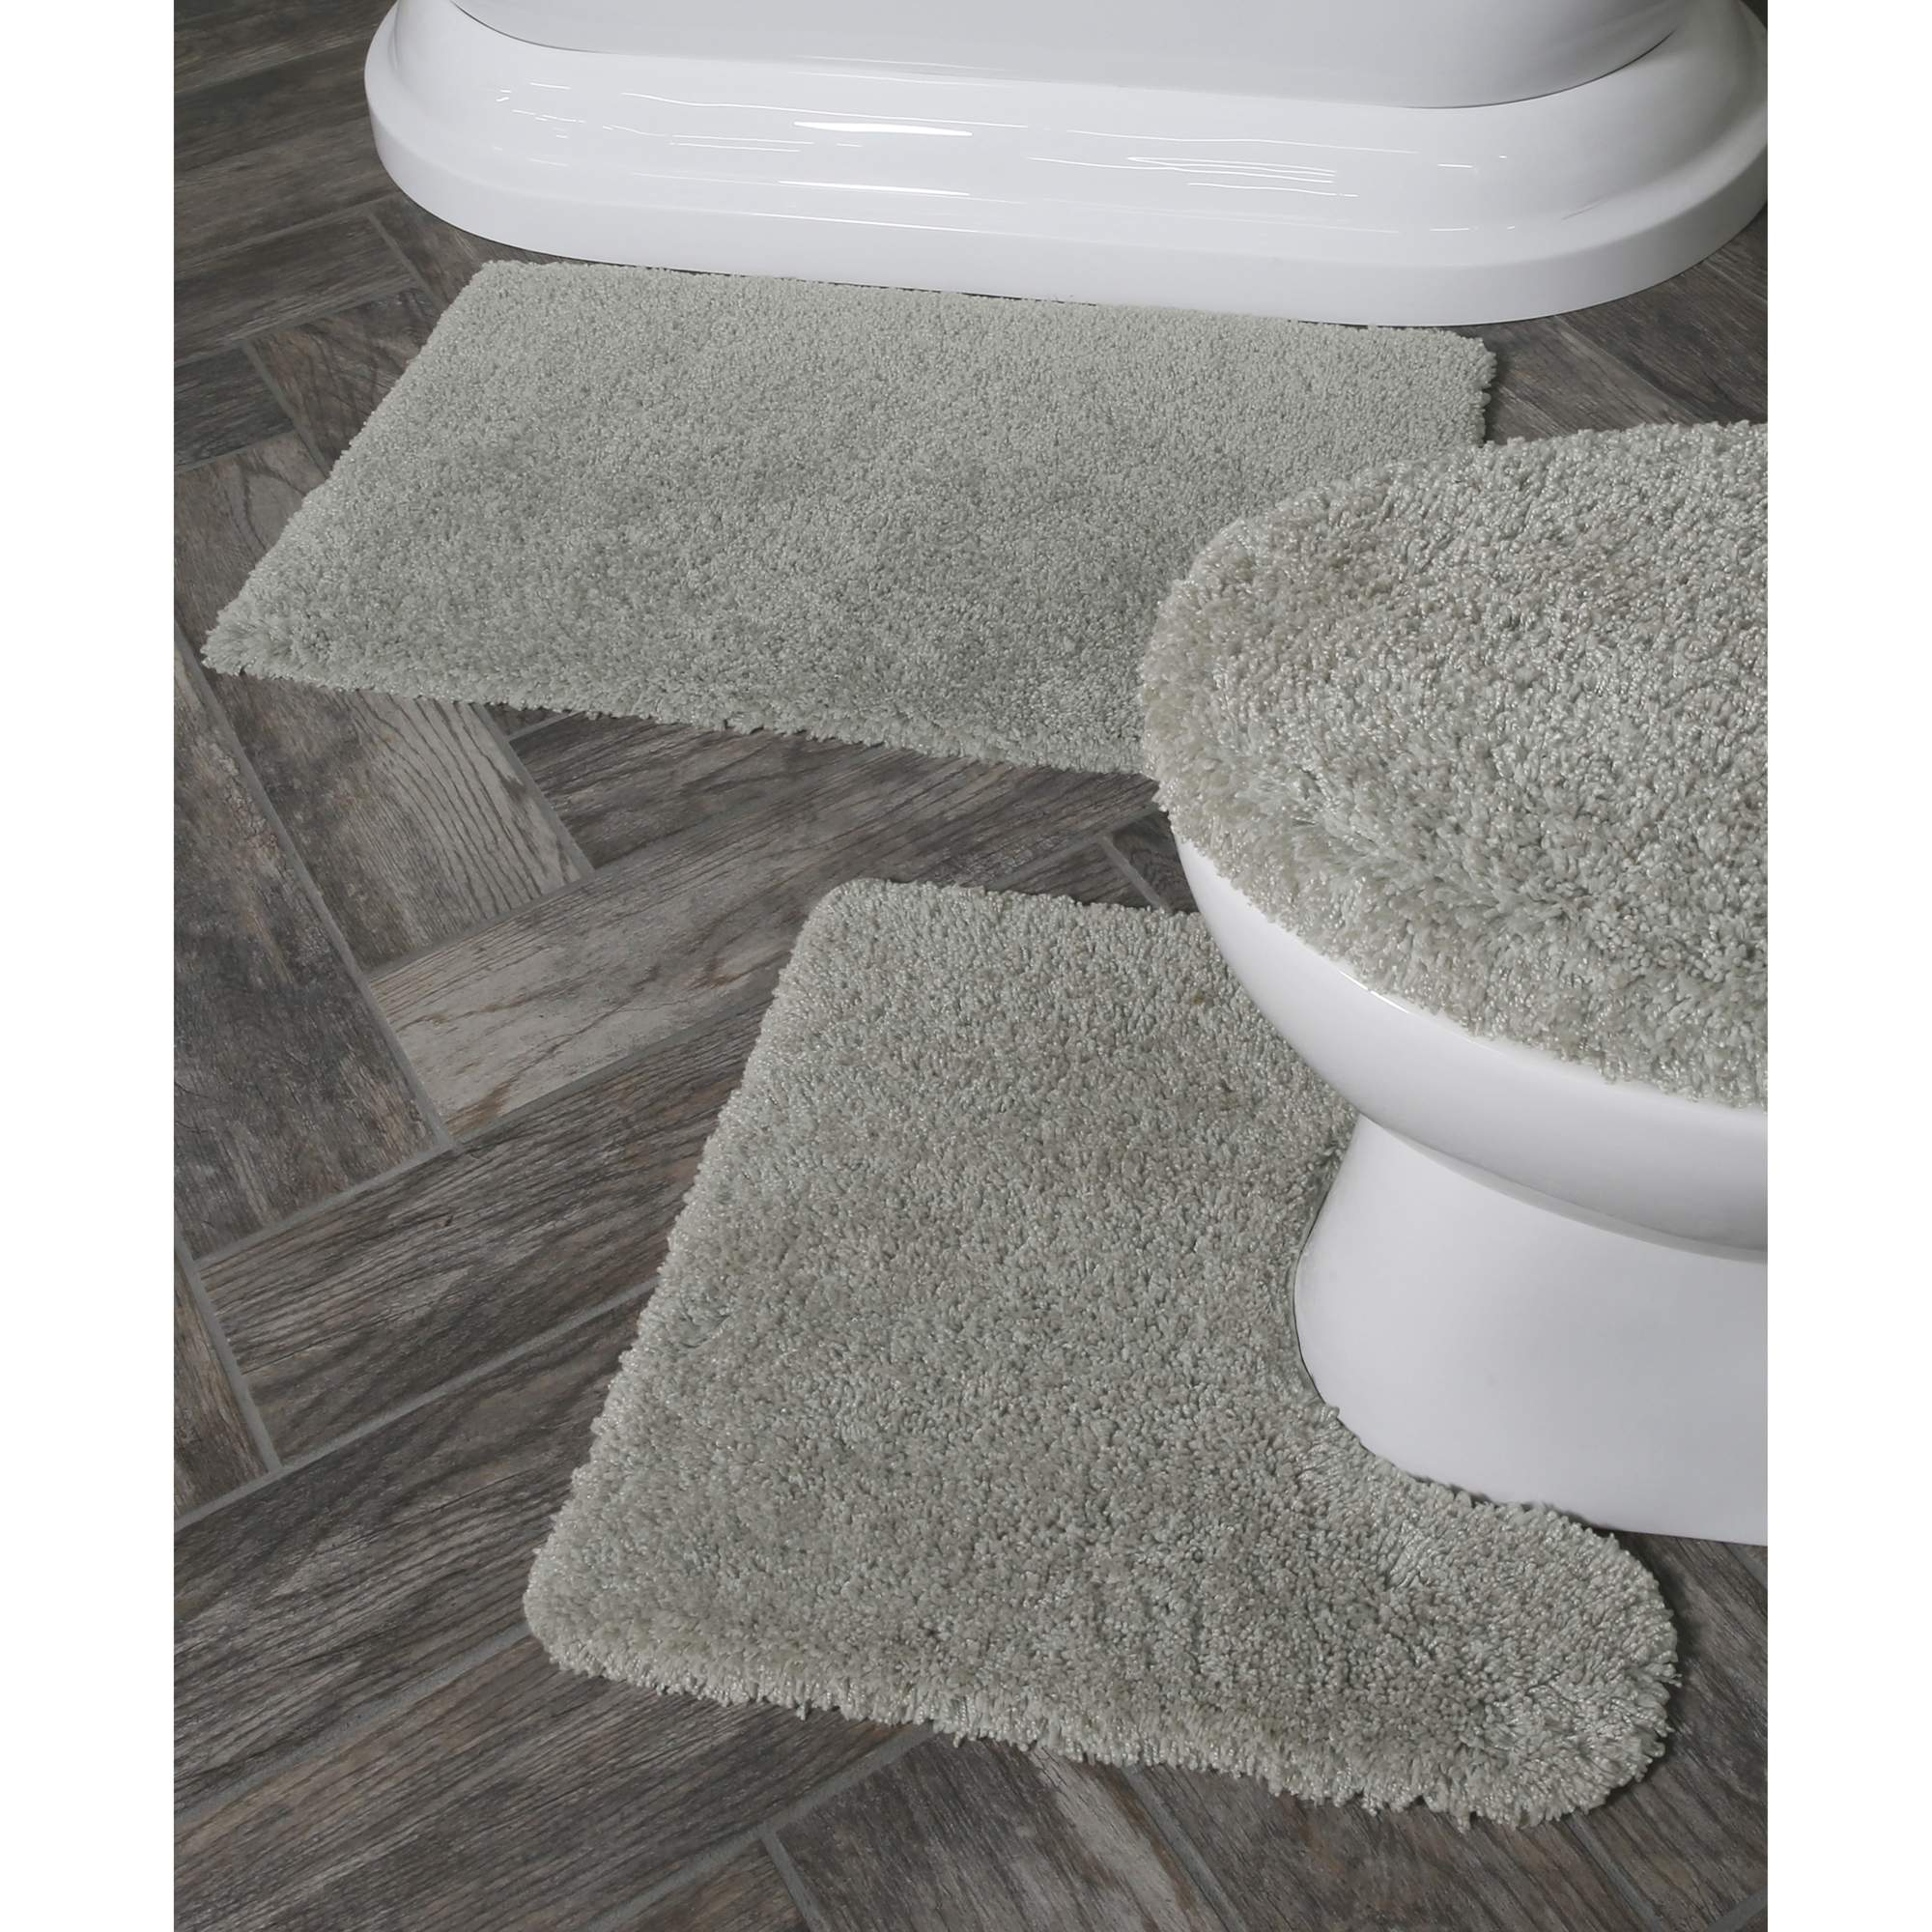 Better Homes�and�Gardens�Thick�and�Plush�3-Piece�Bath�Rug�Set by Maples Industries, Inc.